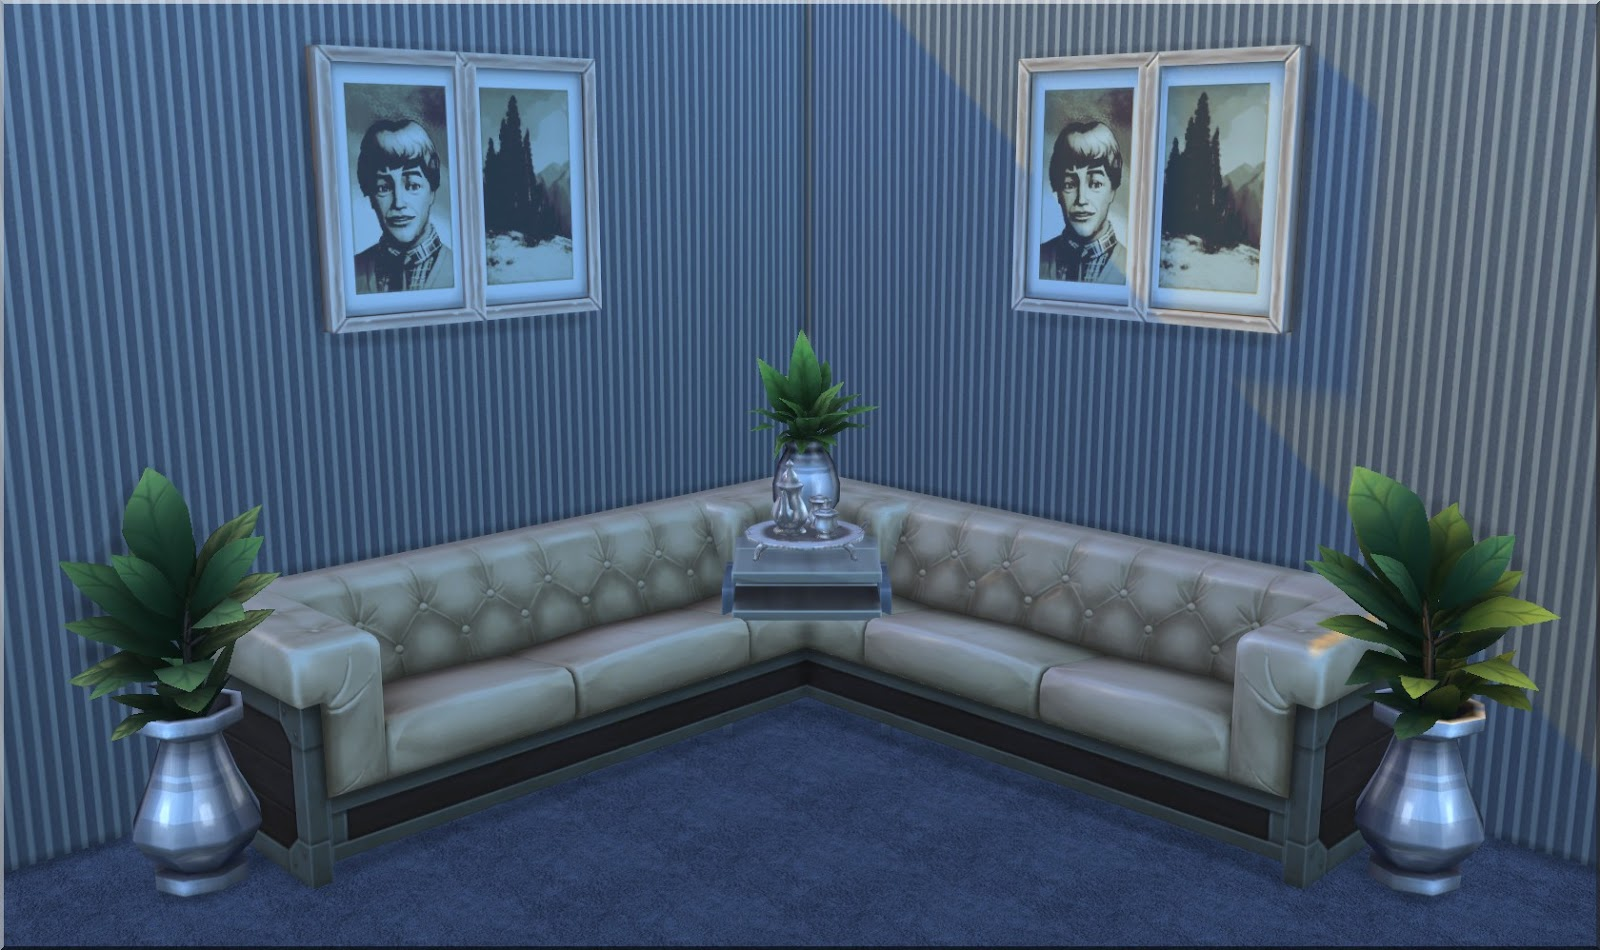 the sims 4 move objects cheat